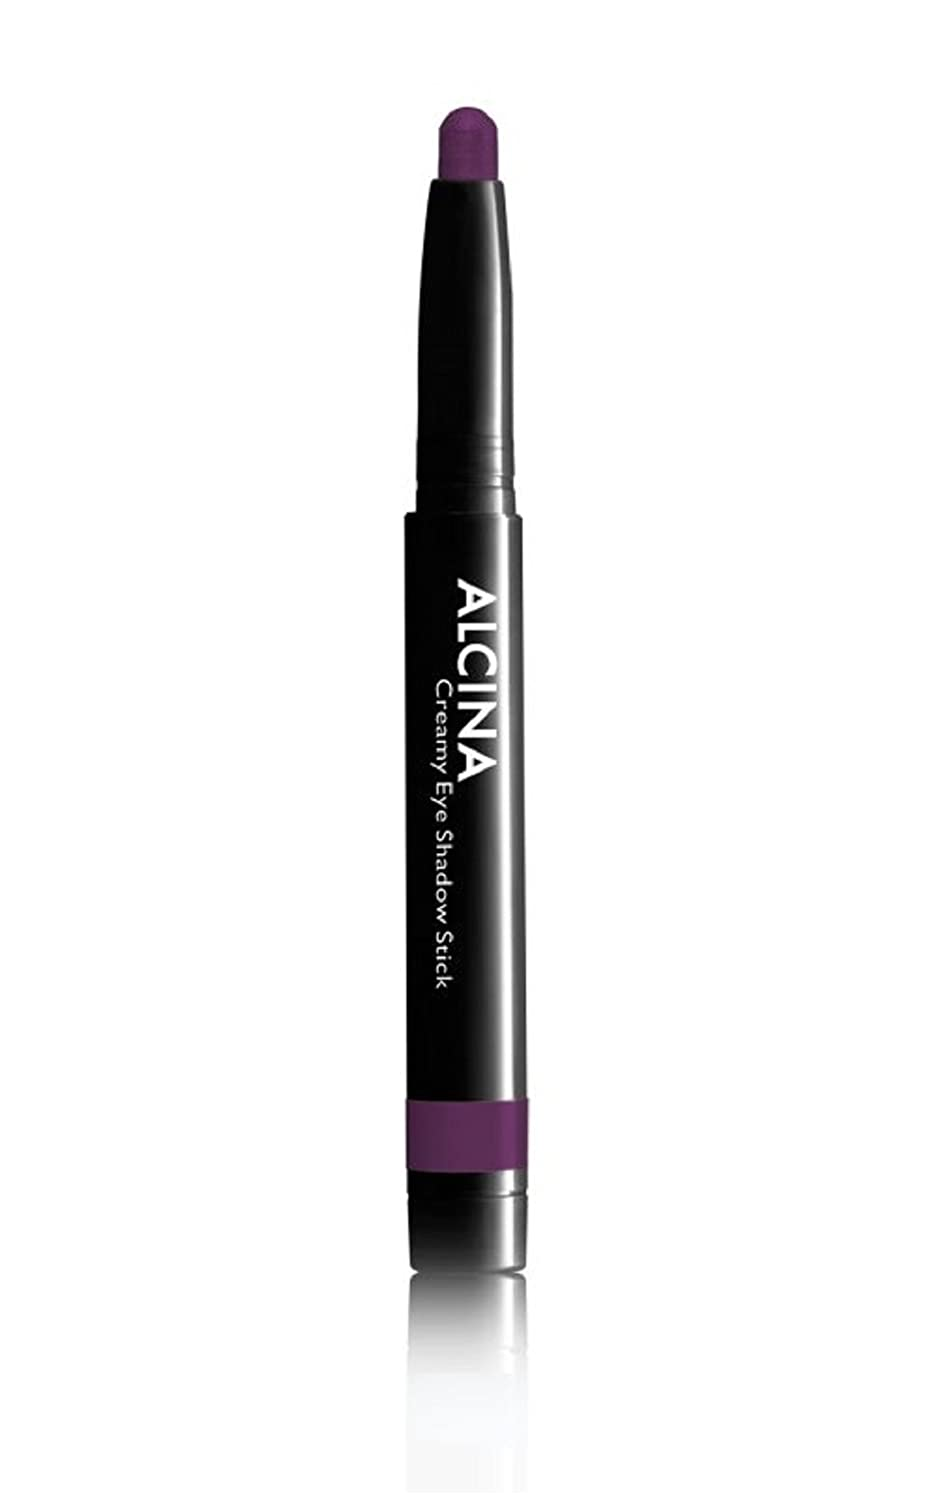 Alcina Intense Eye Shadow Stick Taupe 010 65240